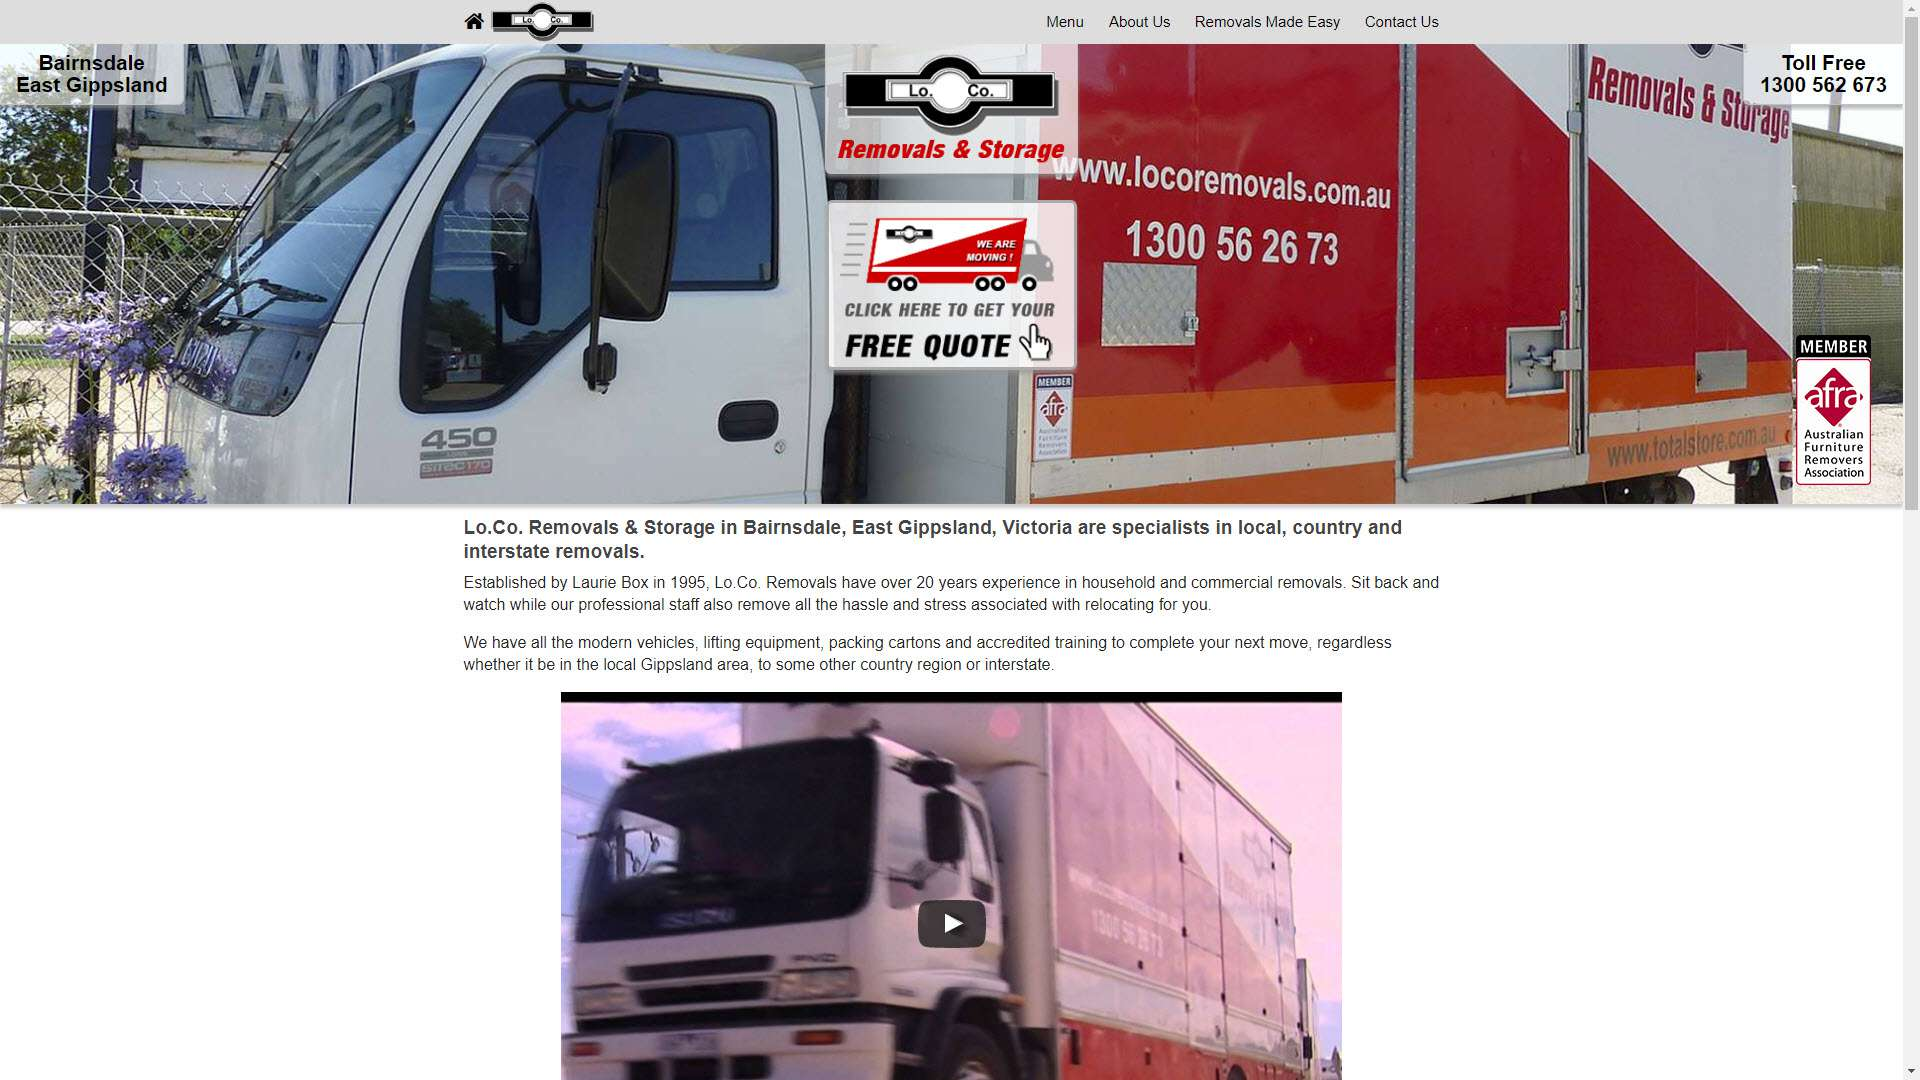 Lo.Co. Removals and Storage, Bairnsdale website